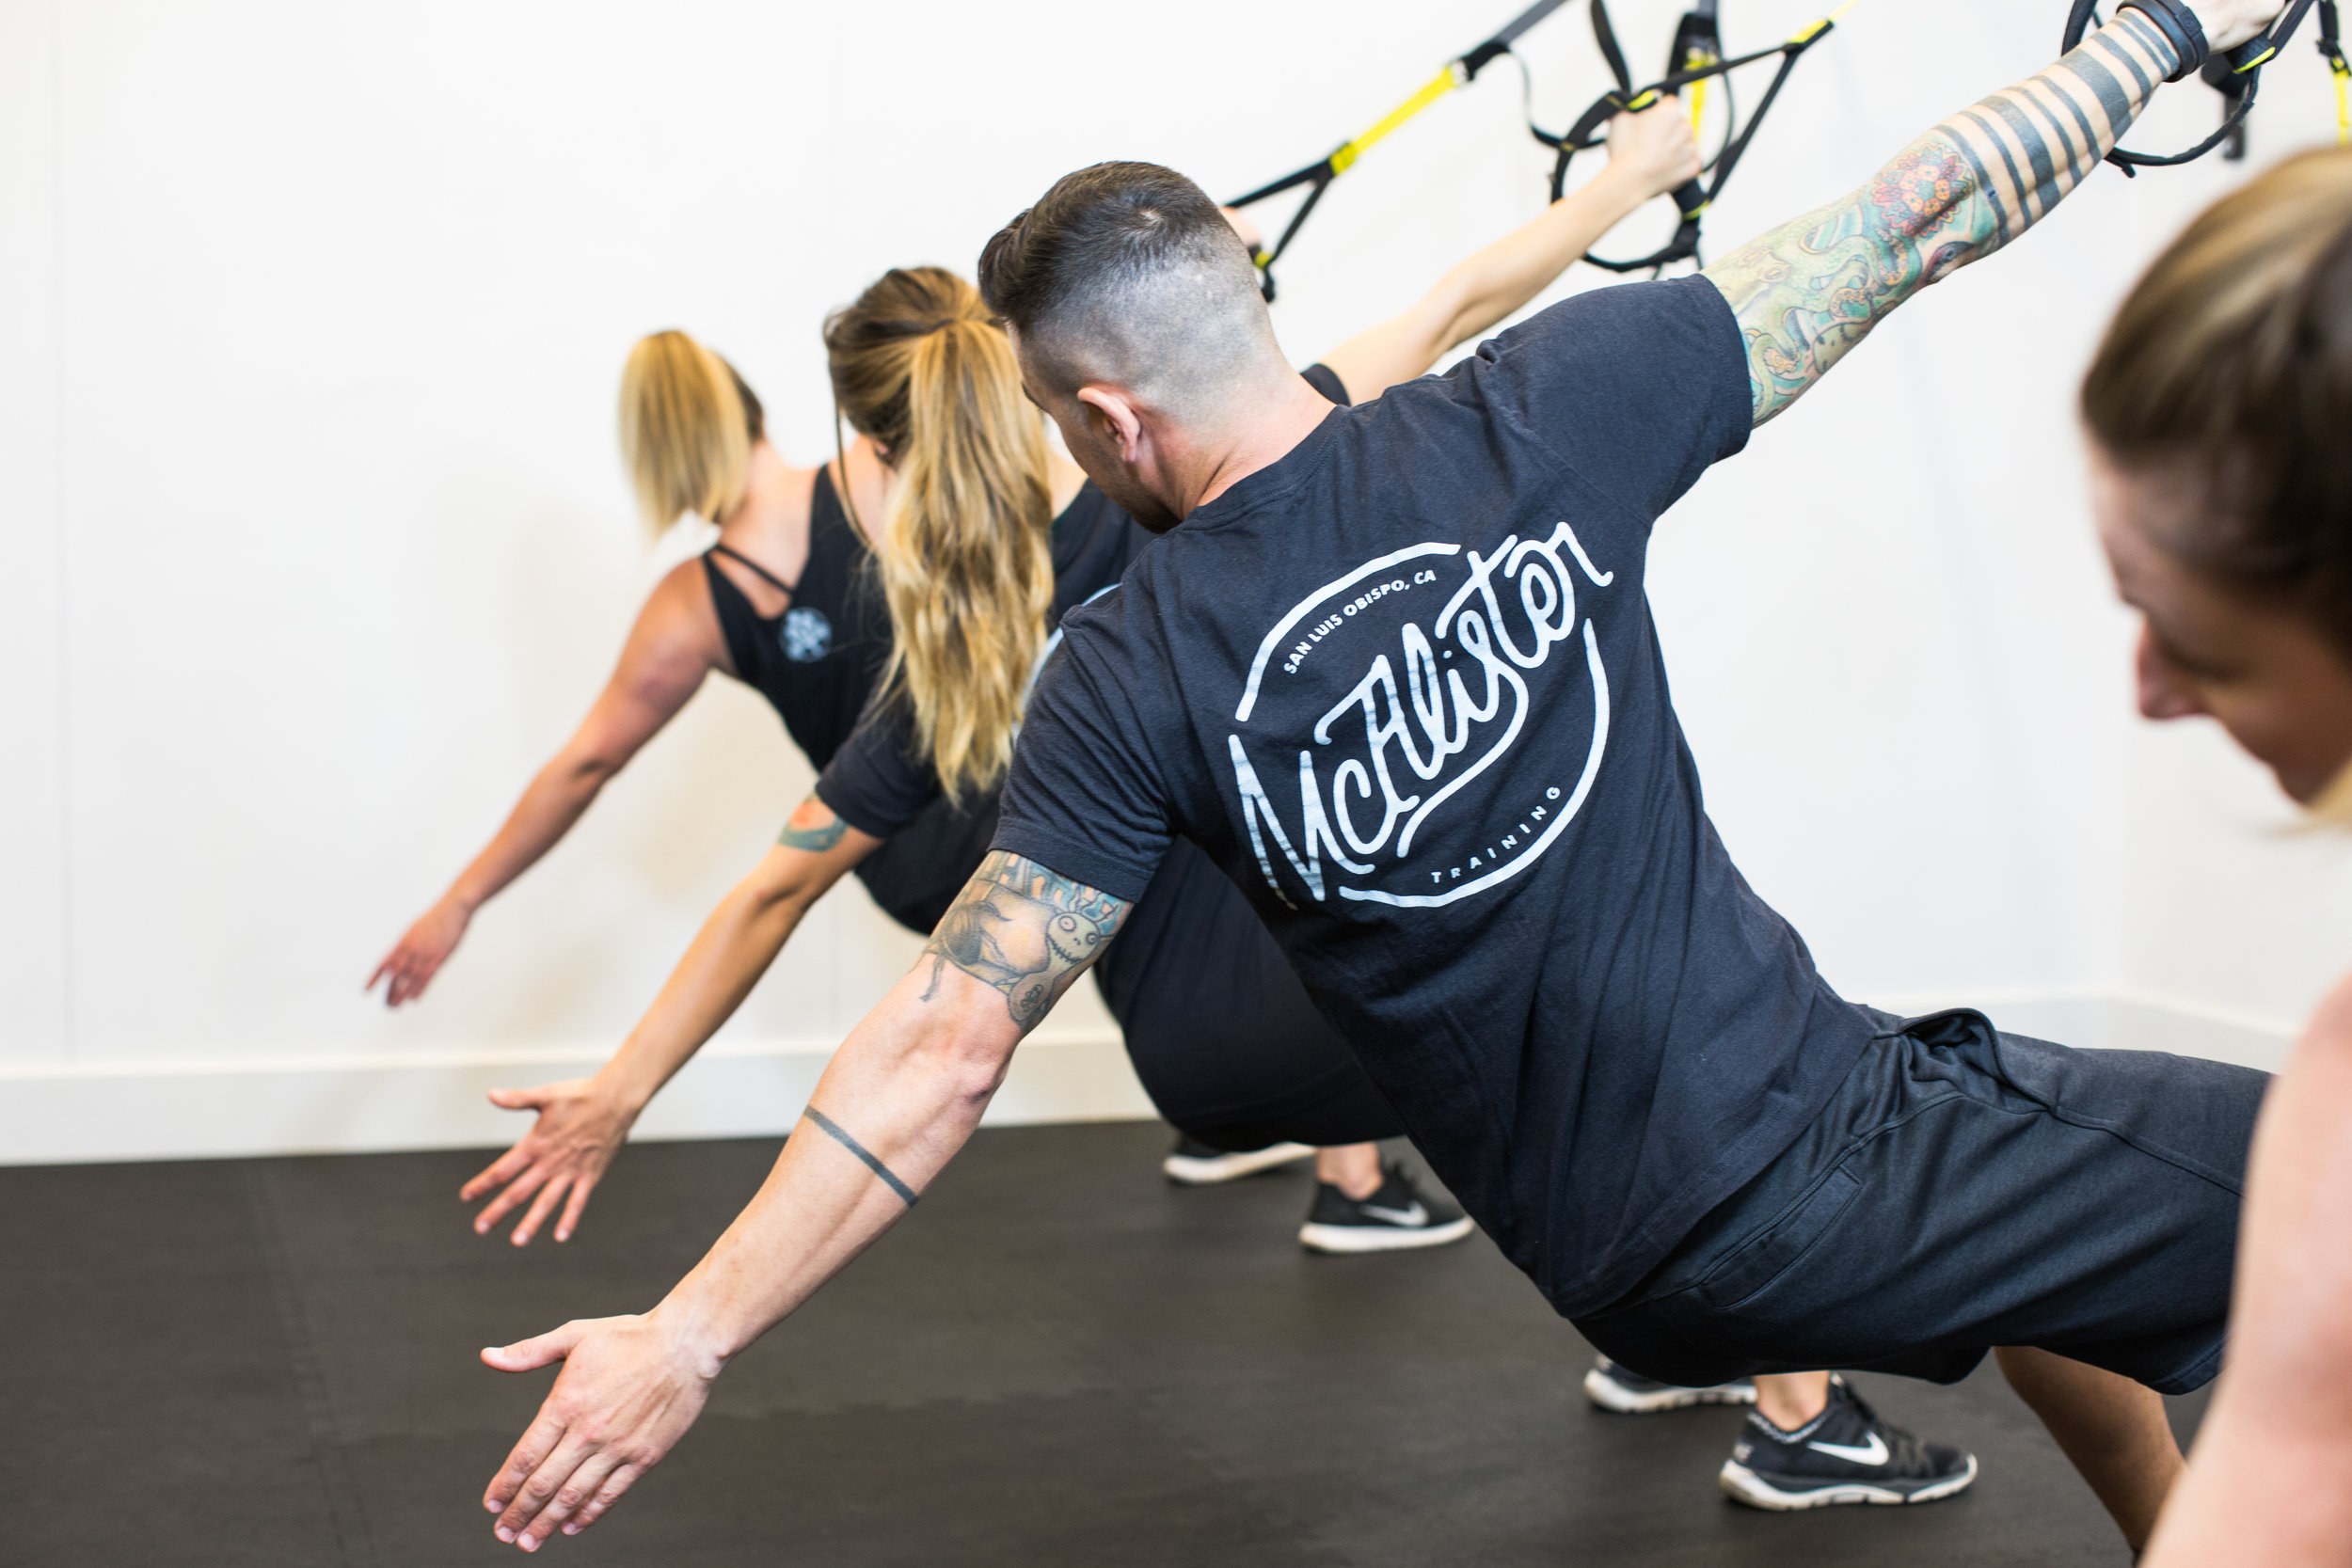 McAlister Training, a fitness studio in San Luis Obispo